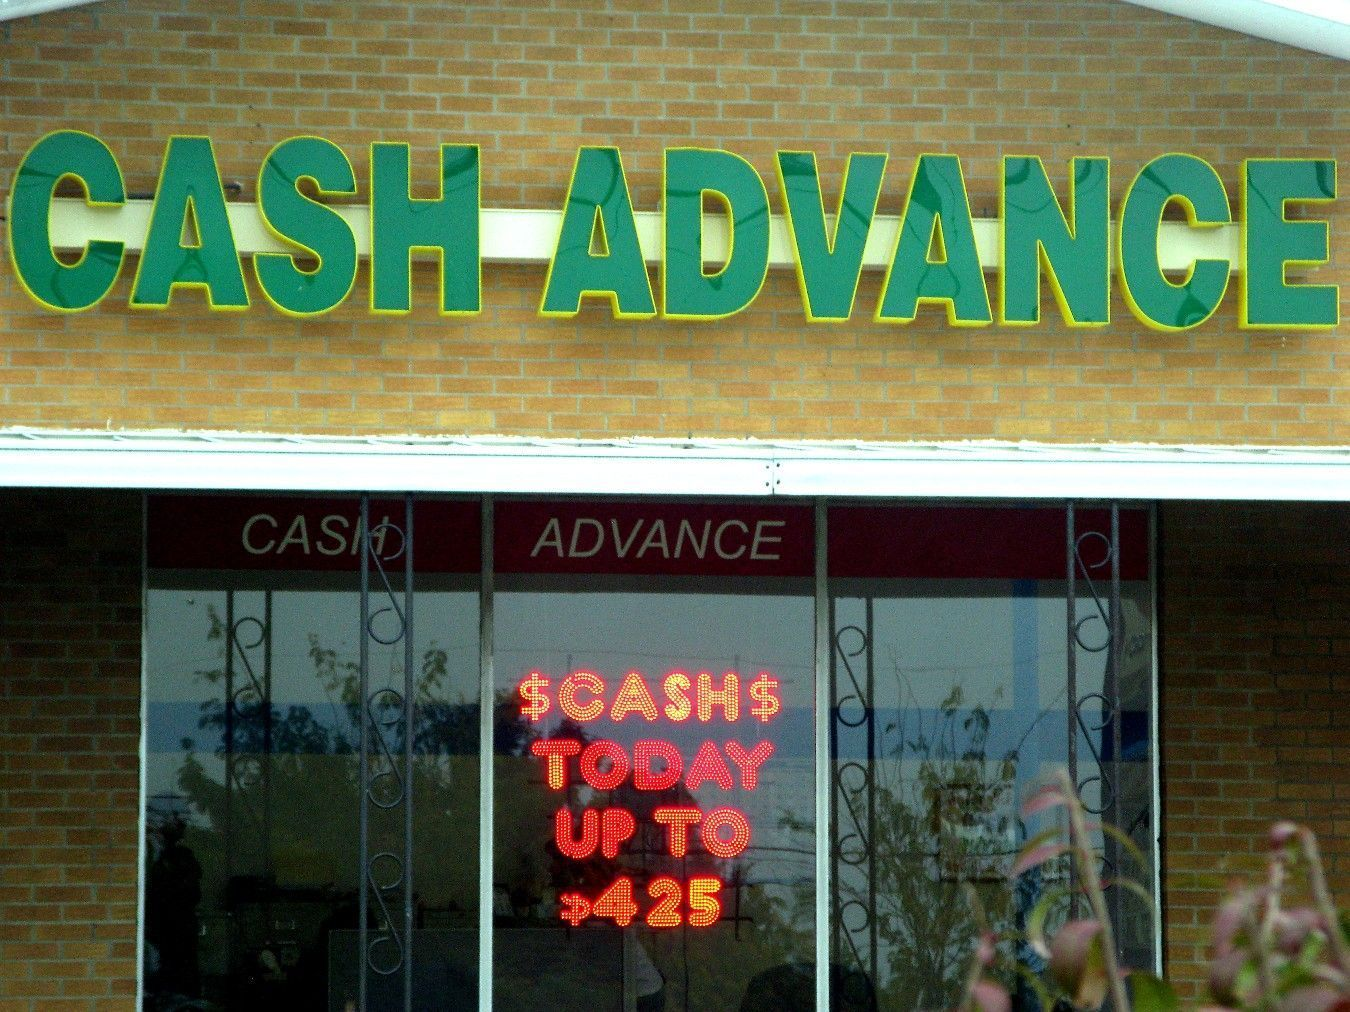 Cash converter payday loans image 10